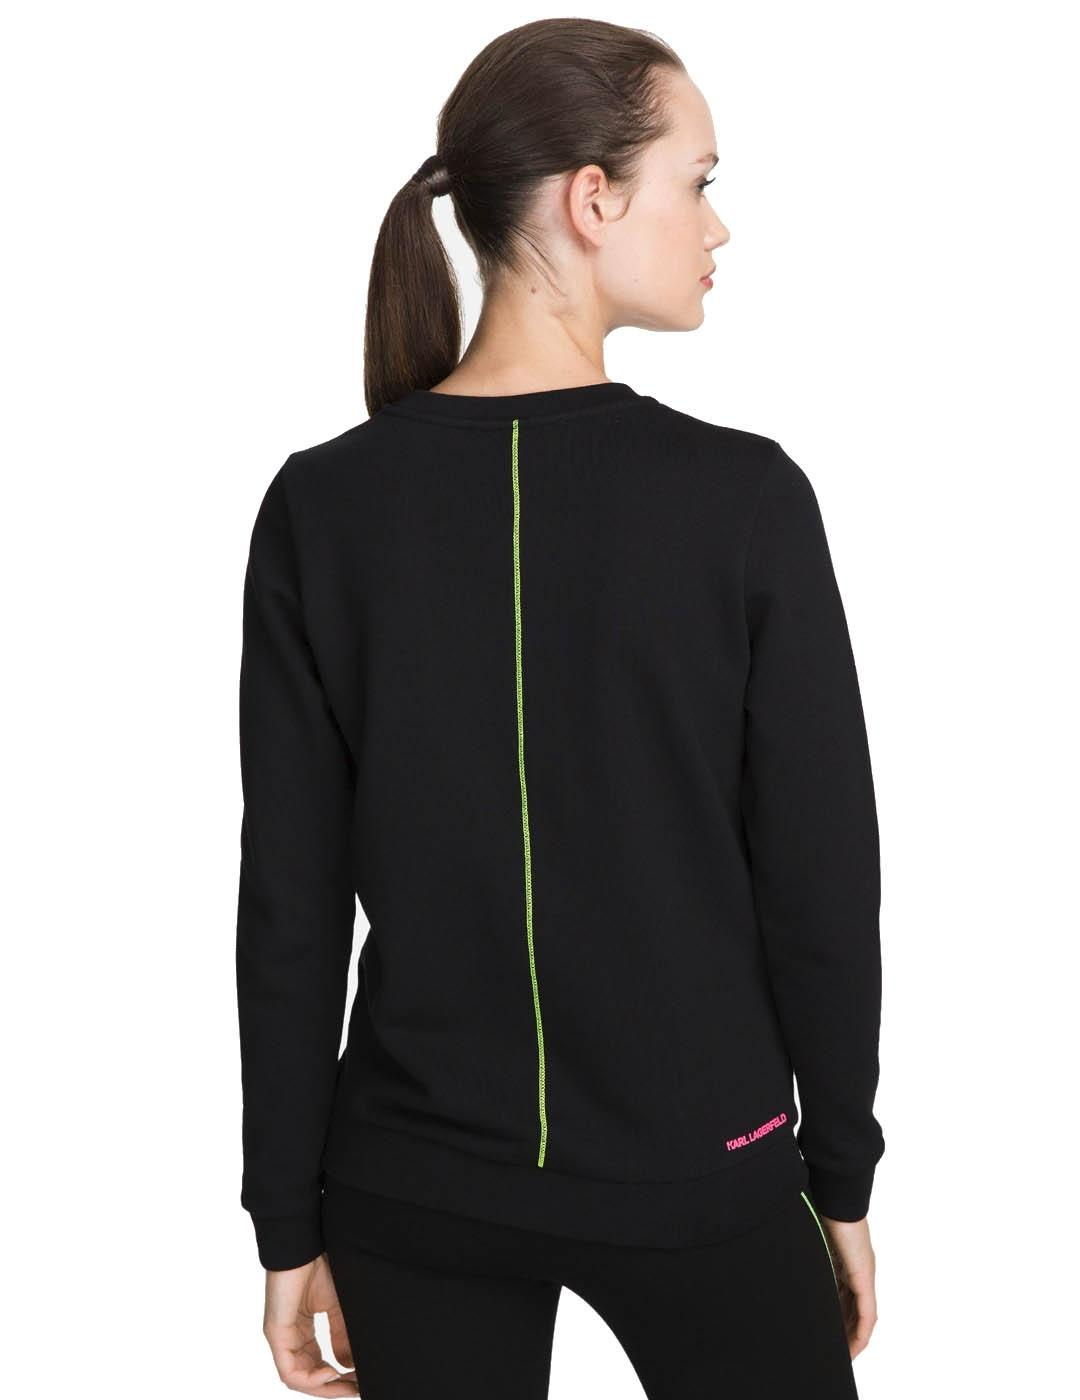 Sudadera Karl Lagerfeld negra Neon Lights Sweat